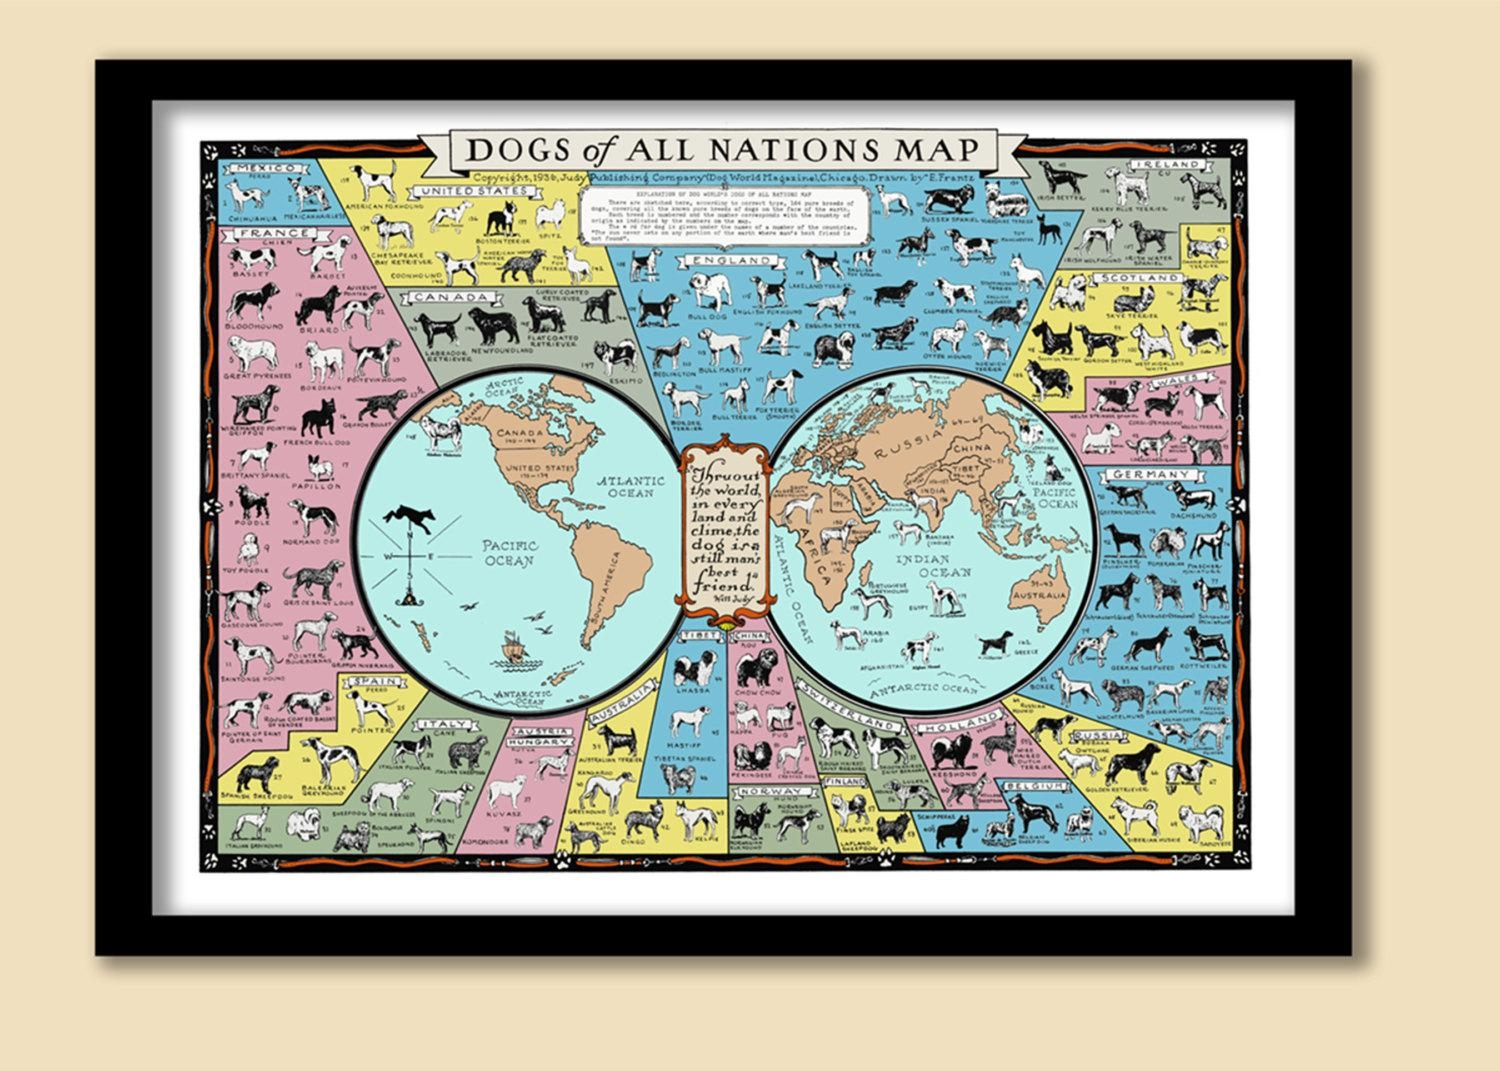 Dog Breeds Of The World Vintage Map / Wall Chart  (Image 4 of 20)